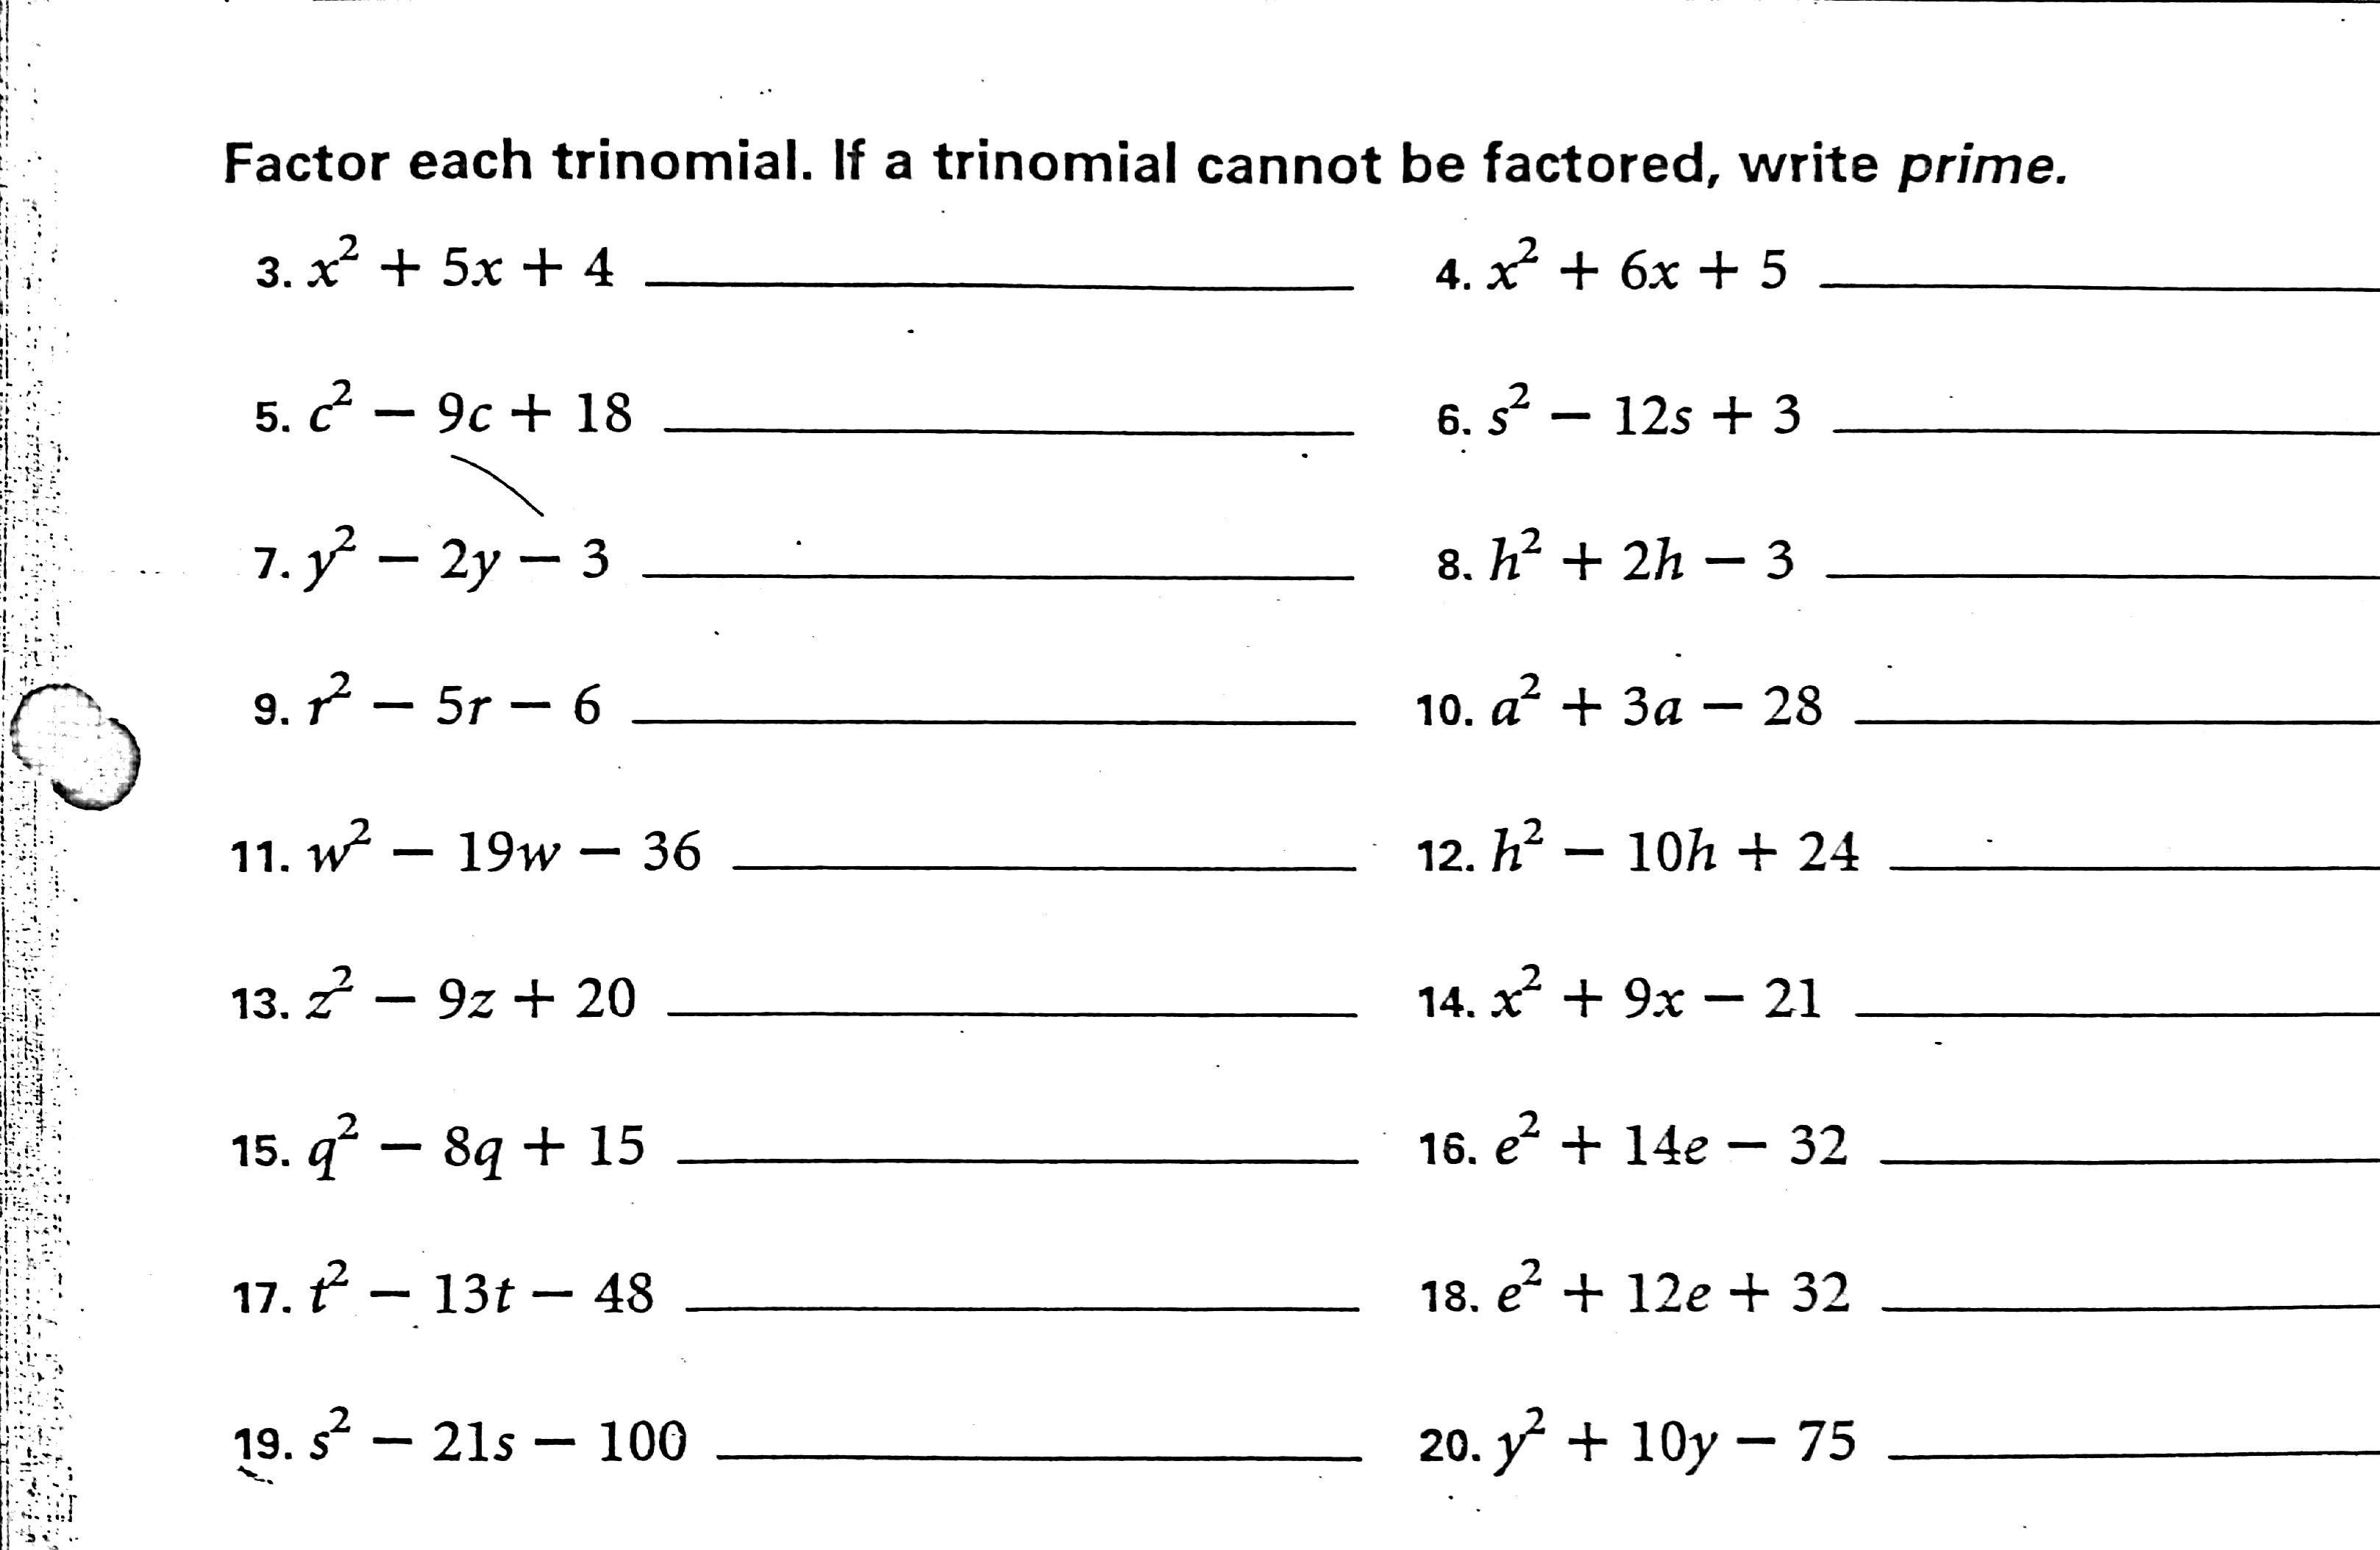 Proatmealus  Scenic Factoring Worksheet  Delwfgcom With Exquisite Factoring Polynomials Practice Worksheet With Answers Coterraneo With Attractive English Test Printable Worksheets Also Complex Sentence Structure Worksheets In Addition Skeleton Worksheet For Kids And Grade  Money Worksheets As Well As Th Grade Maths Worksheets Additionally Nd Grade Prefix Worksheets From Delwfgcom With Proatmealus  Exquisite Factoring Worksheet  Delwfgcom With Attractive Factoring Polynomials Practice Worksheet With Answers Coterraneo And Scenic English Test Printable Worksheets Also Complex Sentence Structure Worksheets In Addition Skeleton Worksheet For Kids From Delwfgcom